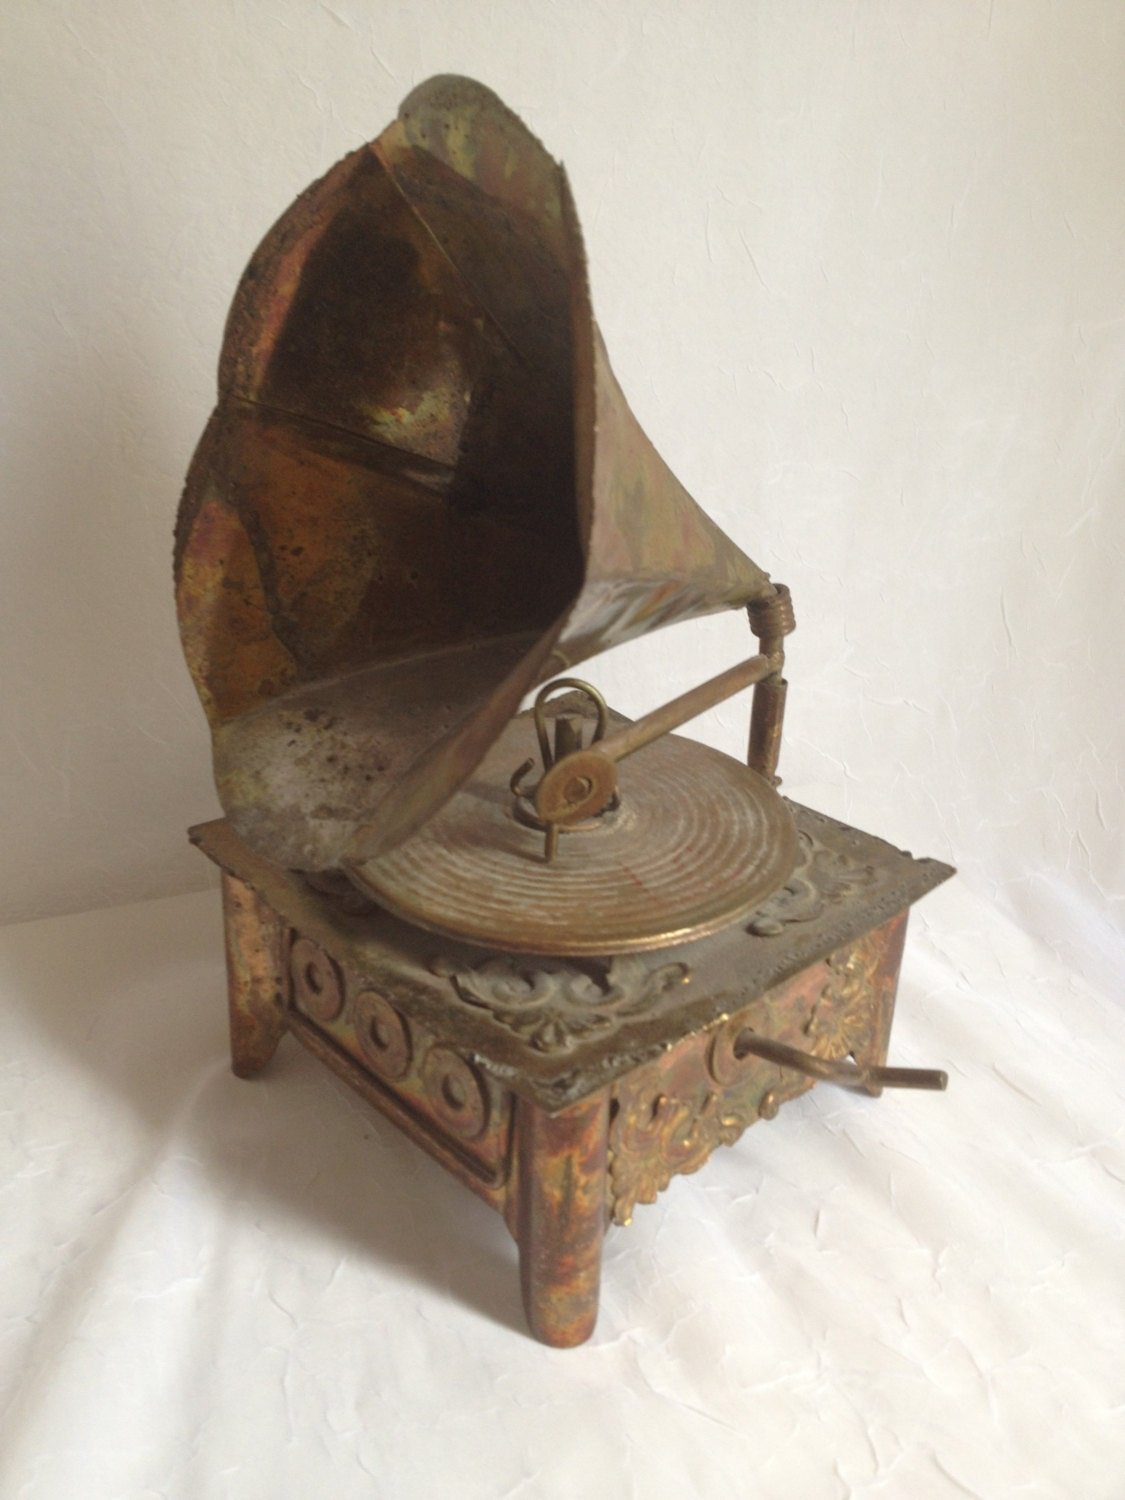 Vintage Record Player (Music Box) - PrimeAntiques